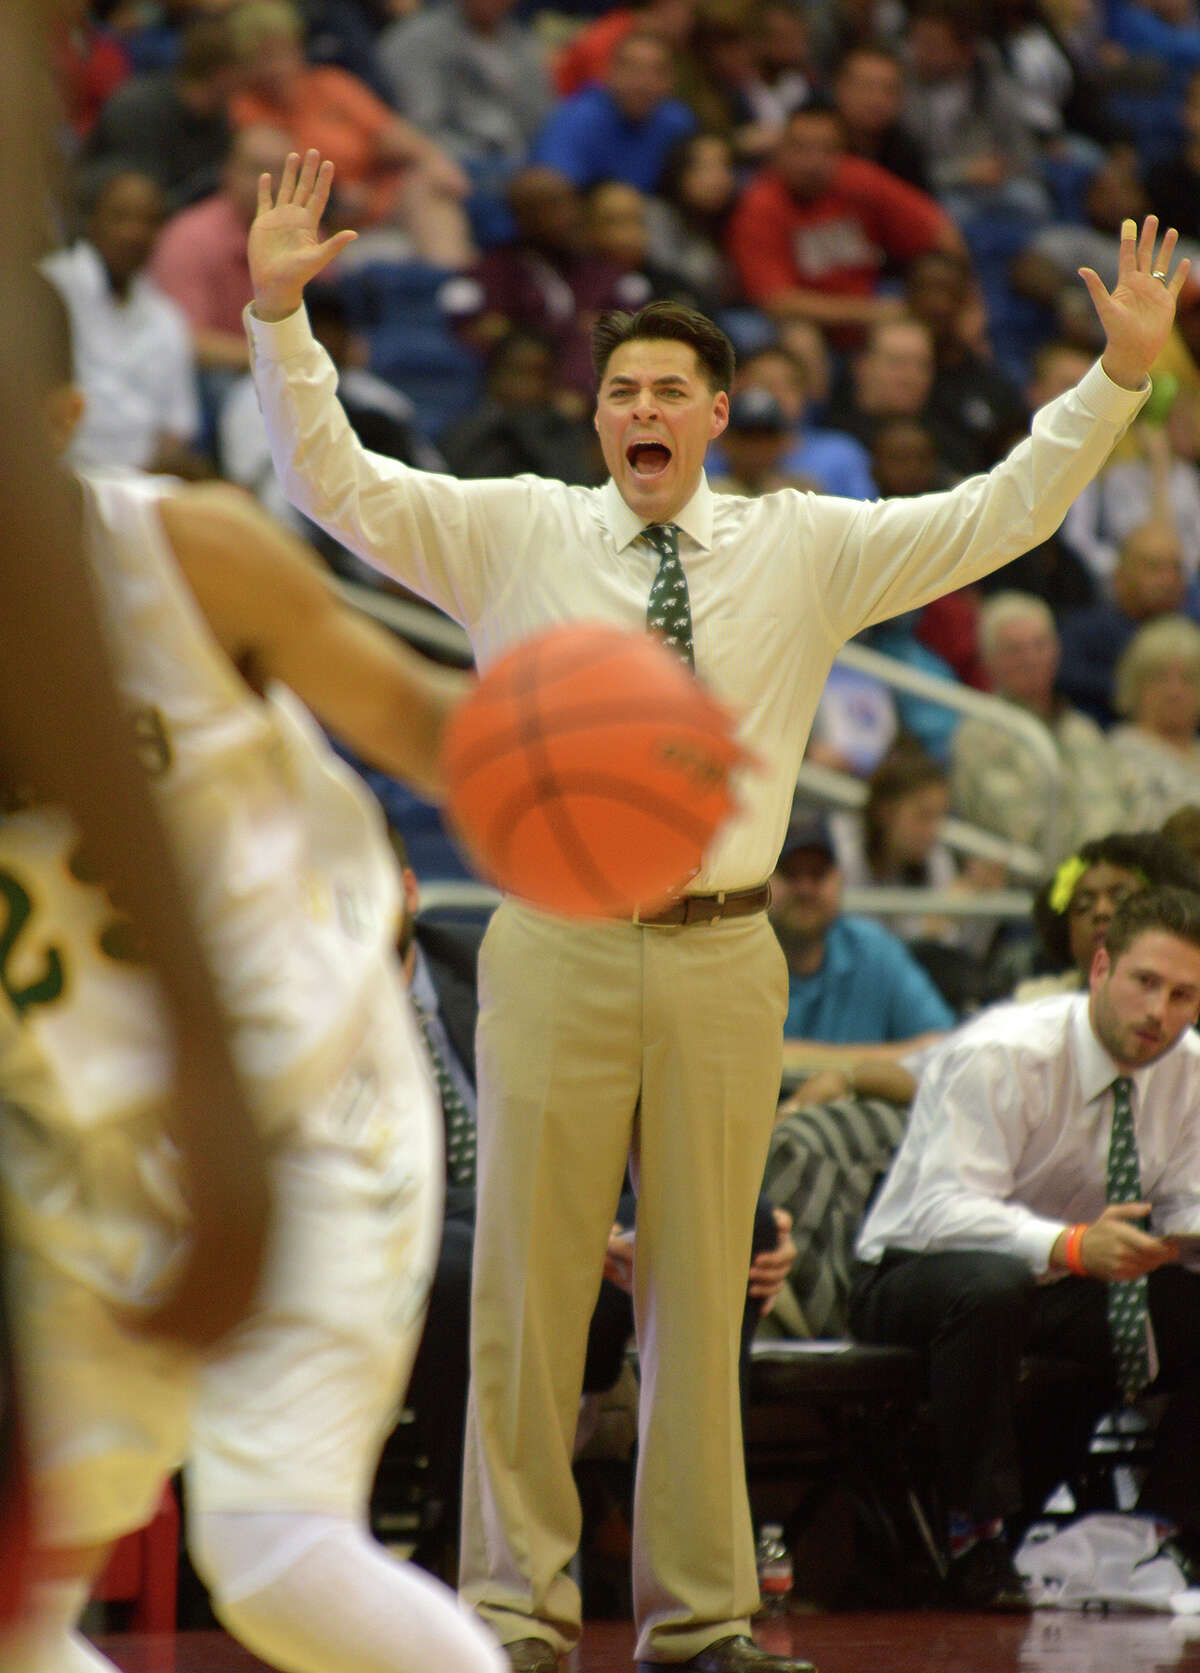 Cy Falls head coach Richard Flores shouts instructions to his team during the 2nd quarter of their Class 6A state final versus San Antonio Wagner at the Alamodome in San Antonio on Saturday, March 11, 2017. (Photo by Jerry Baker/Freelance)